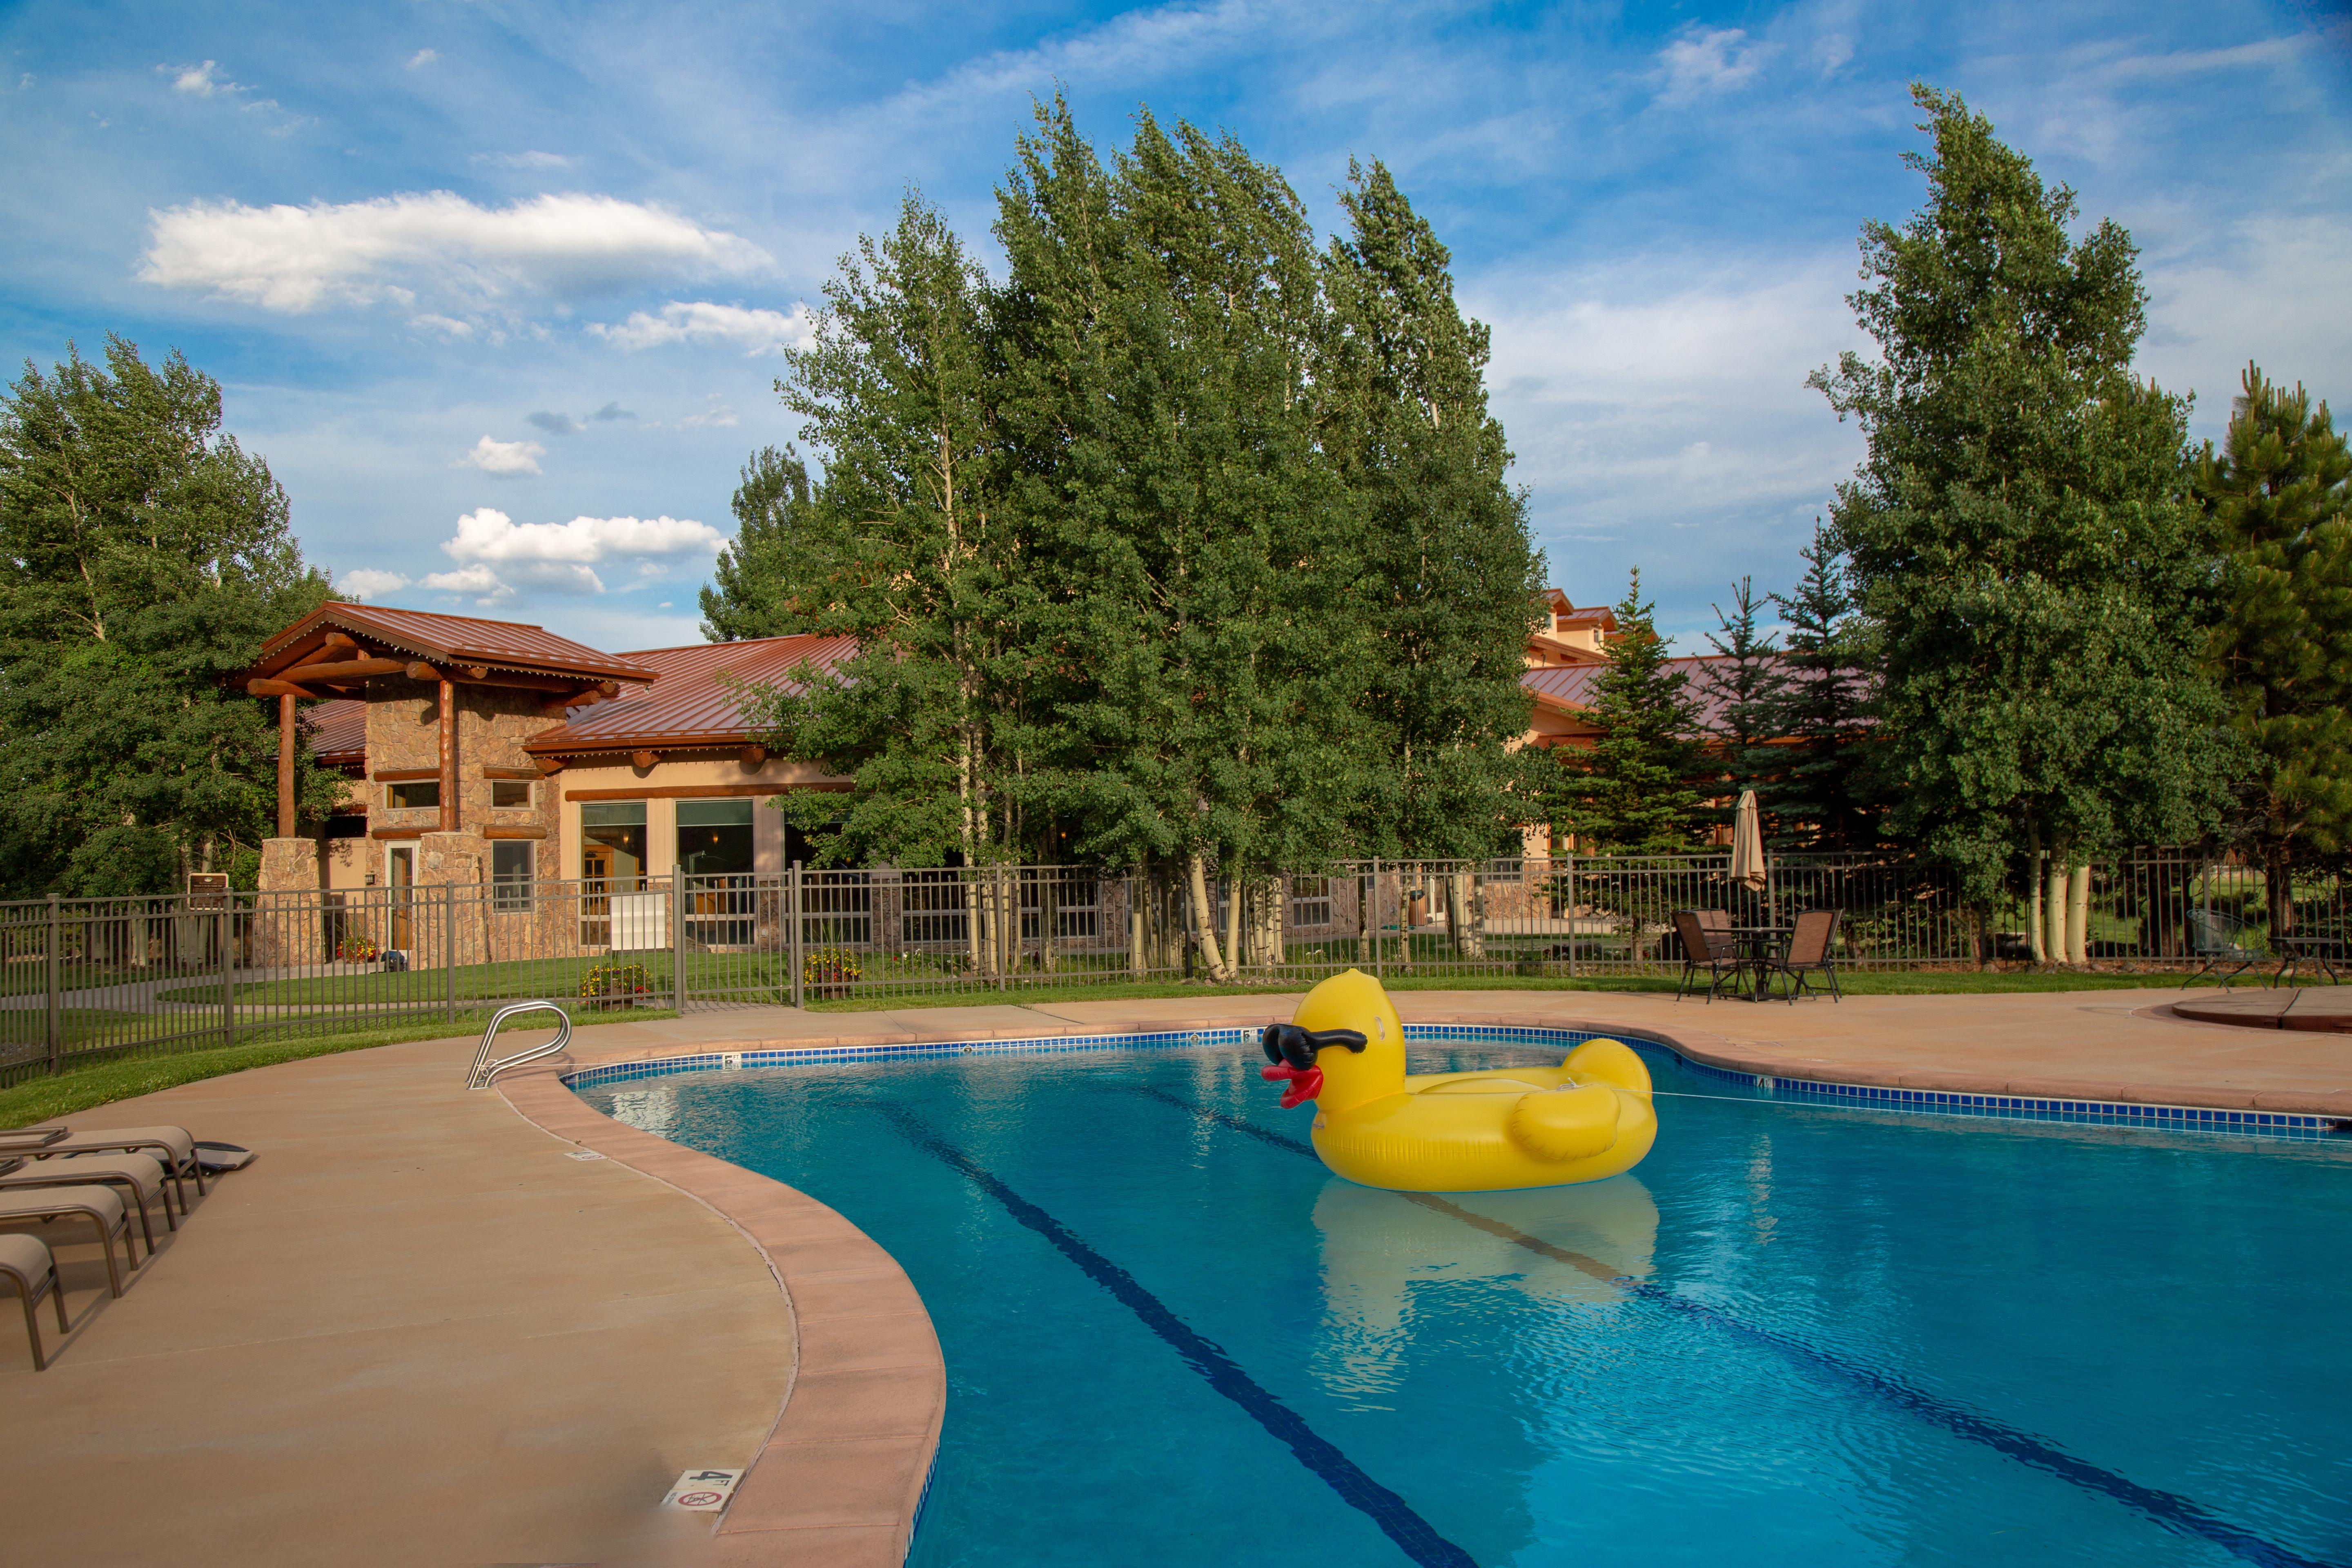 pool swimming complex with yellow duck in center